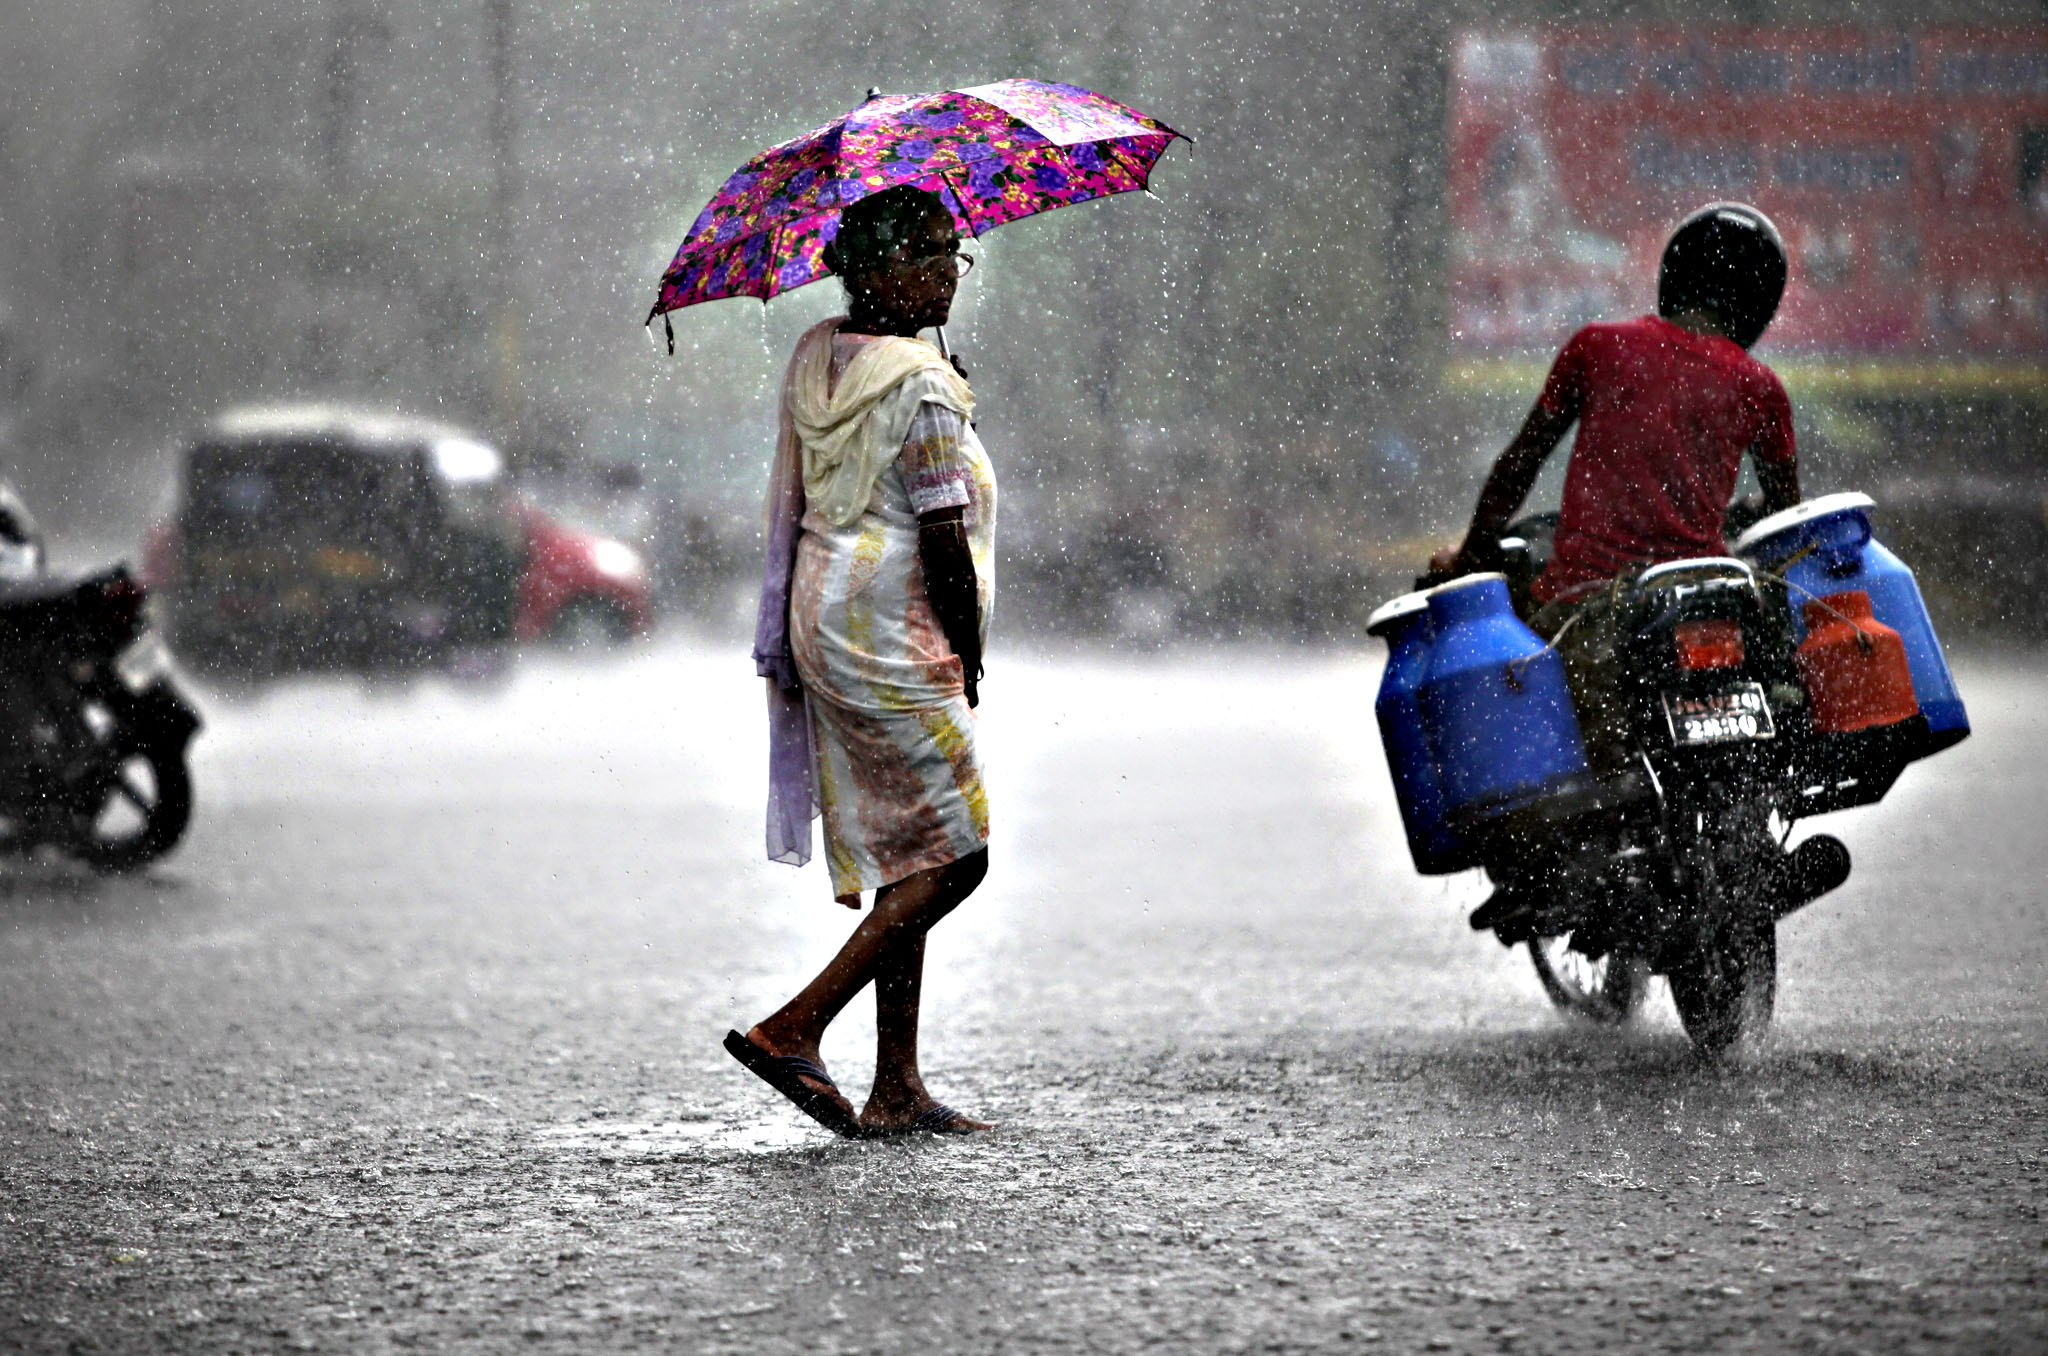 An Indian woman walks holding an umbrella during monsoon rains in Jammu, India, Tuesday, July 21, 2015. India receives the annual monsoon rains from June to September